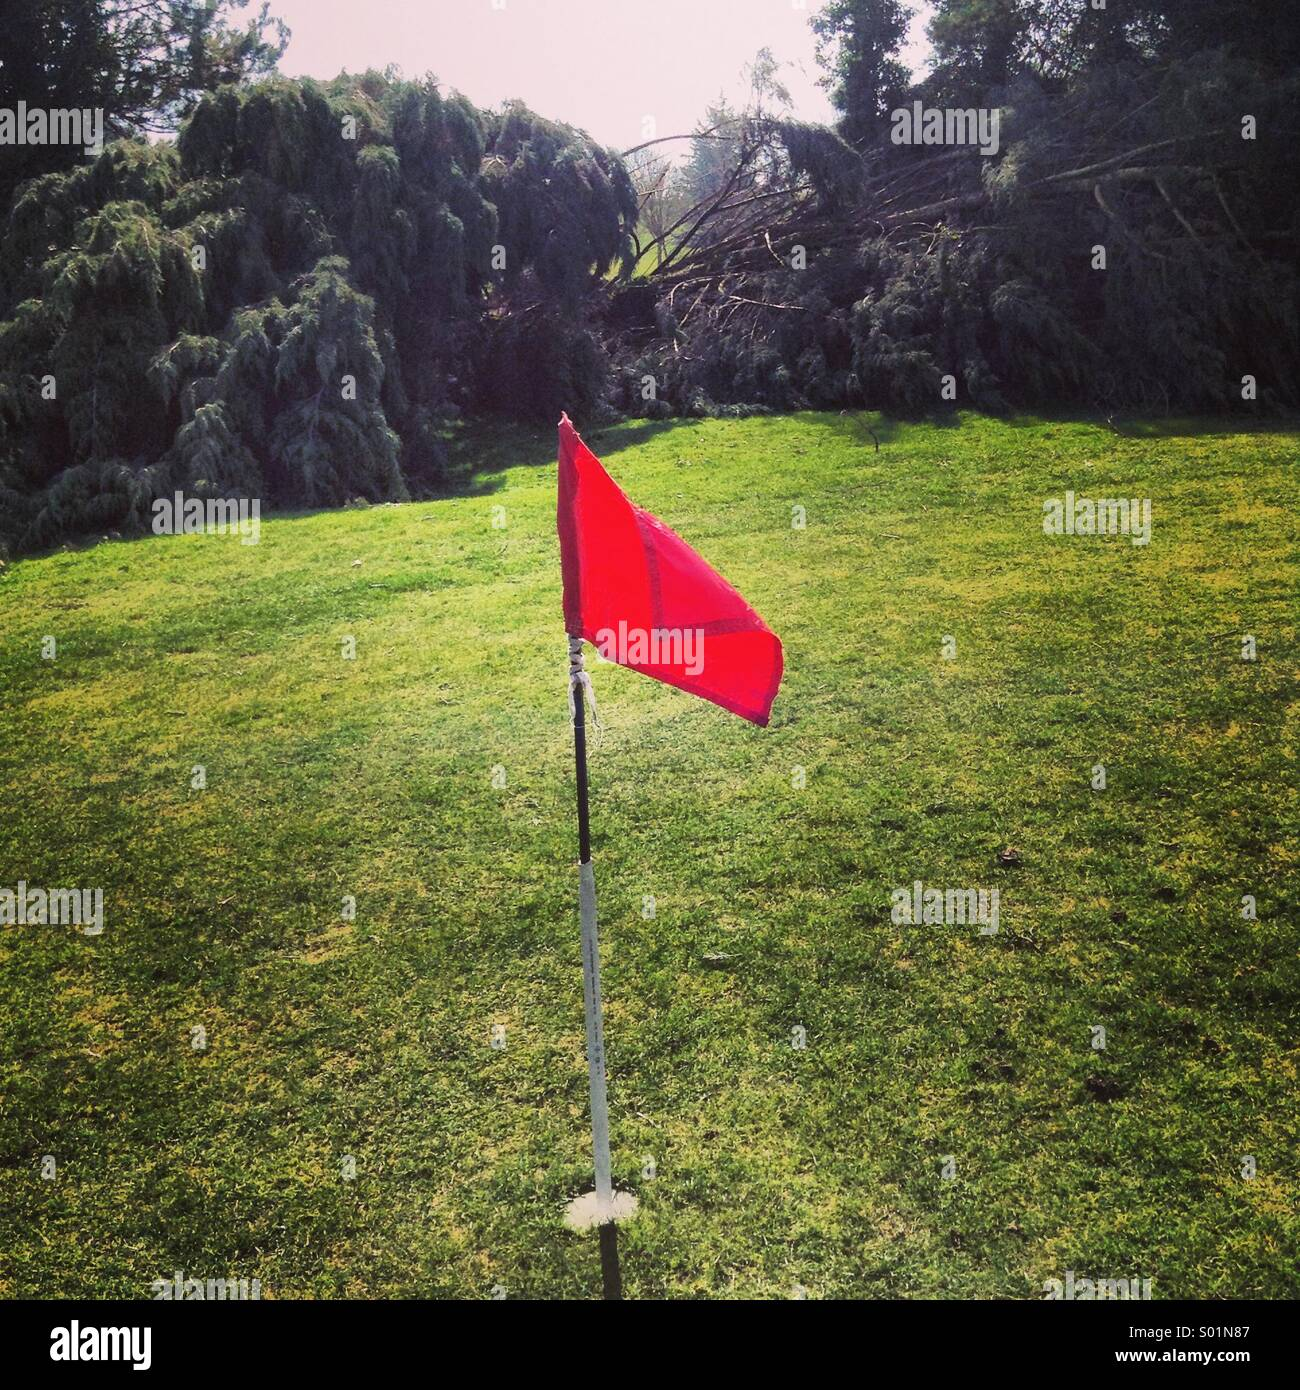 Hole-in-one Photo Stock